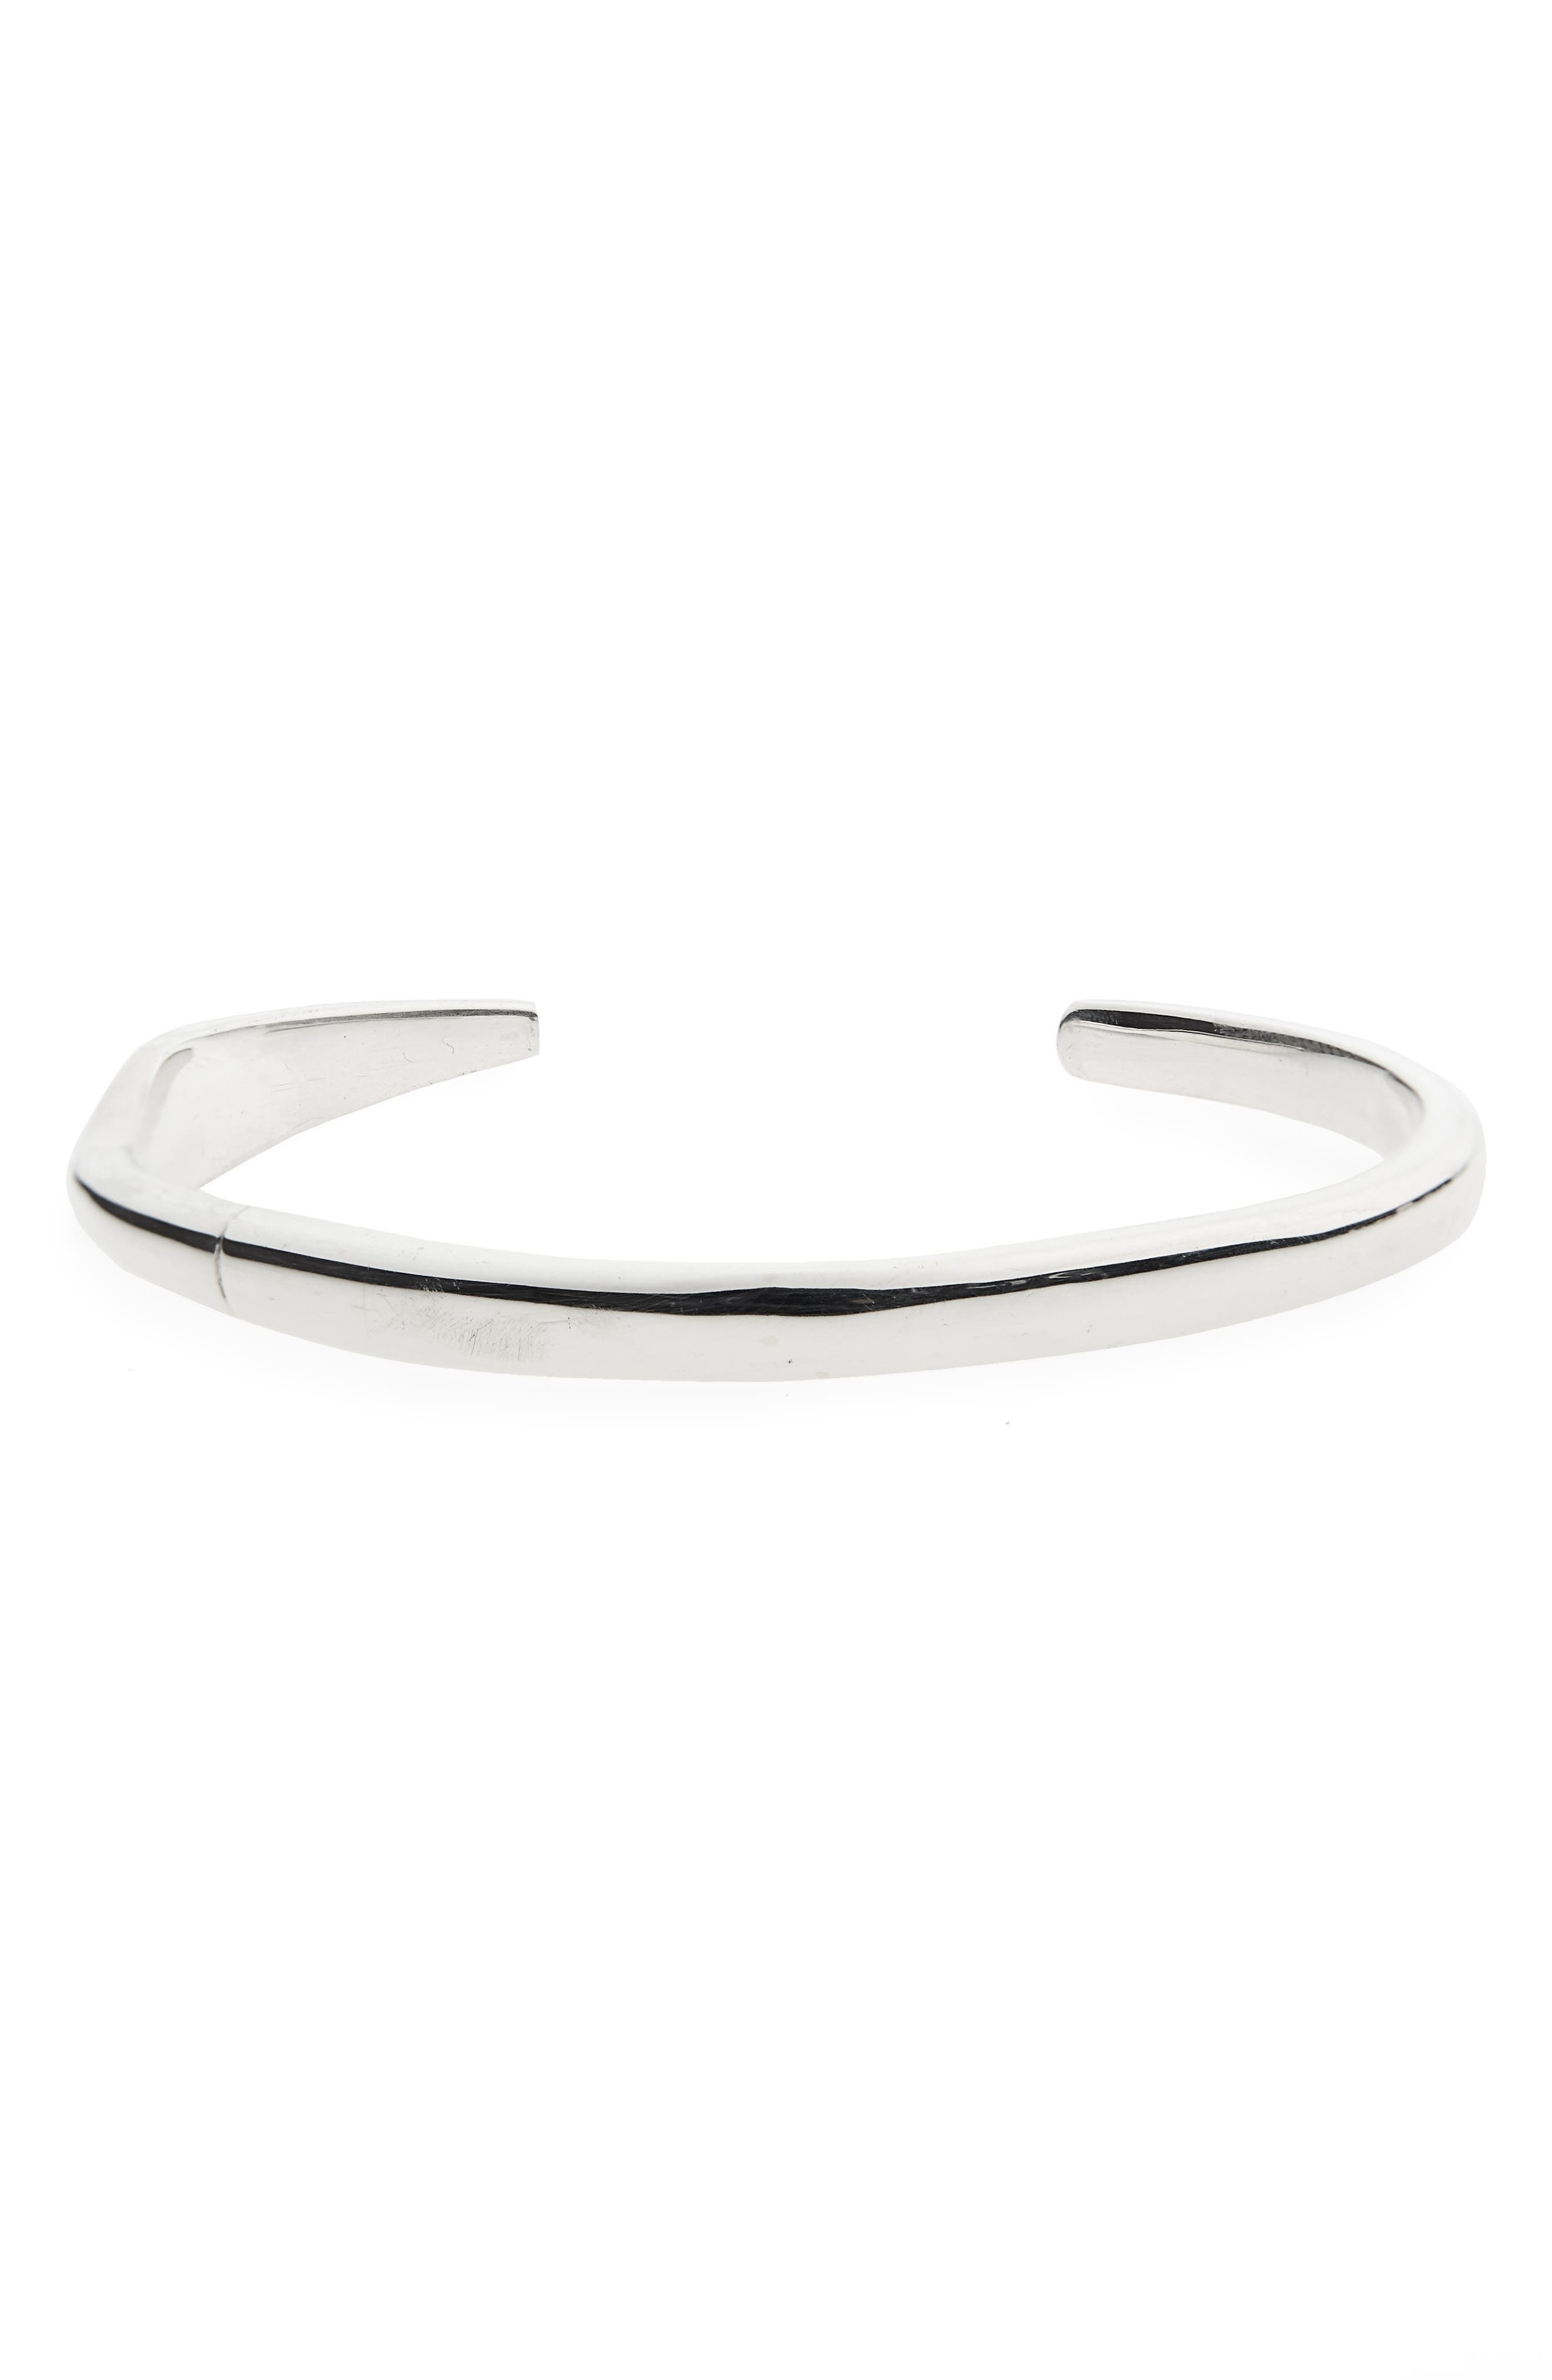 Fortitude Cuff Bracelet,                             Main thumbnail 1, color,                             SILVER